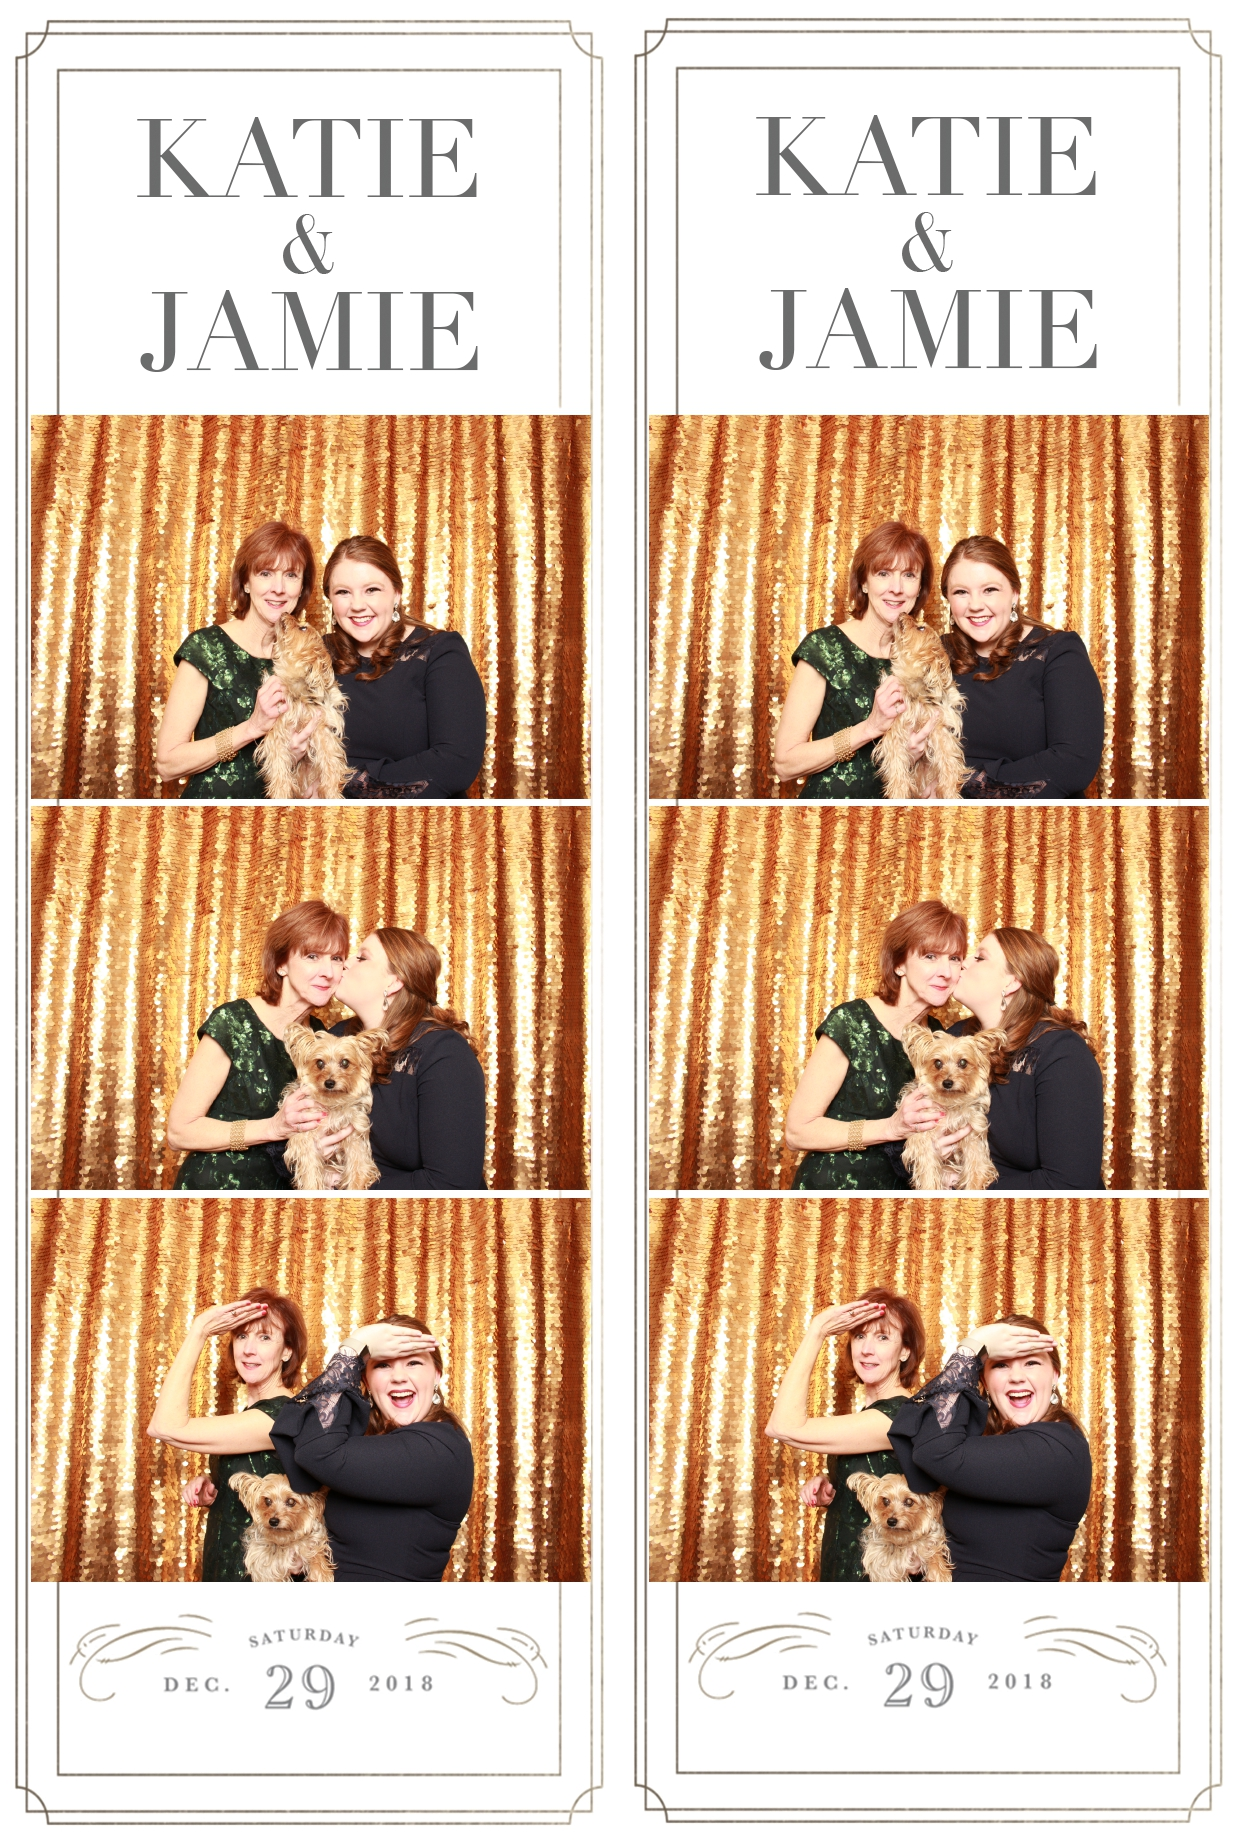 Oh Happy Day Booth - Katie and Jamie Customized19.jpg